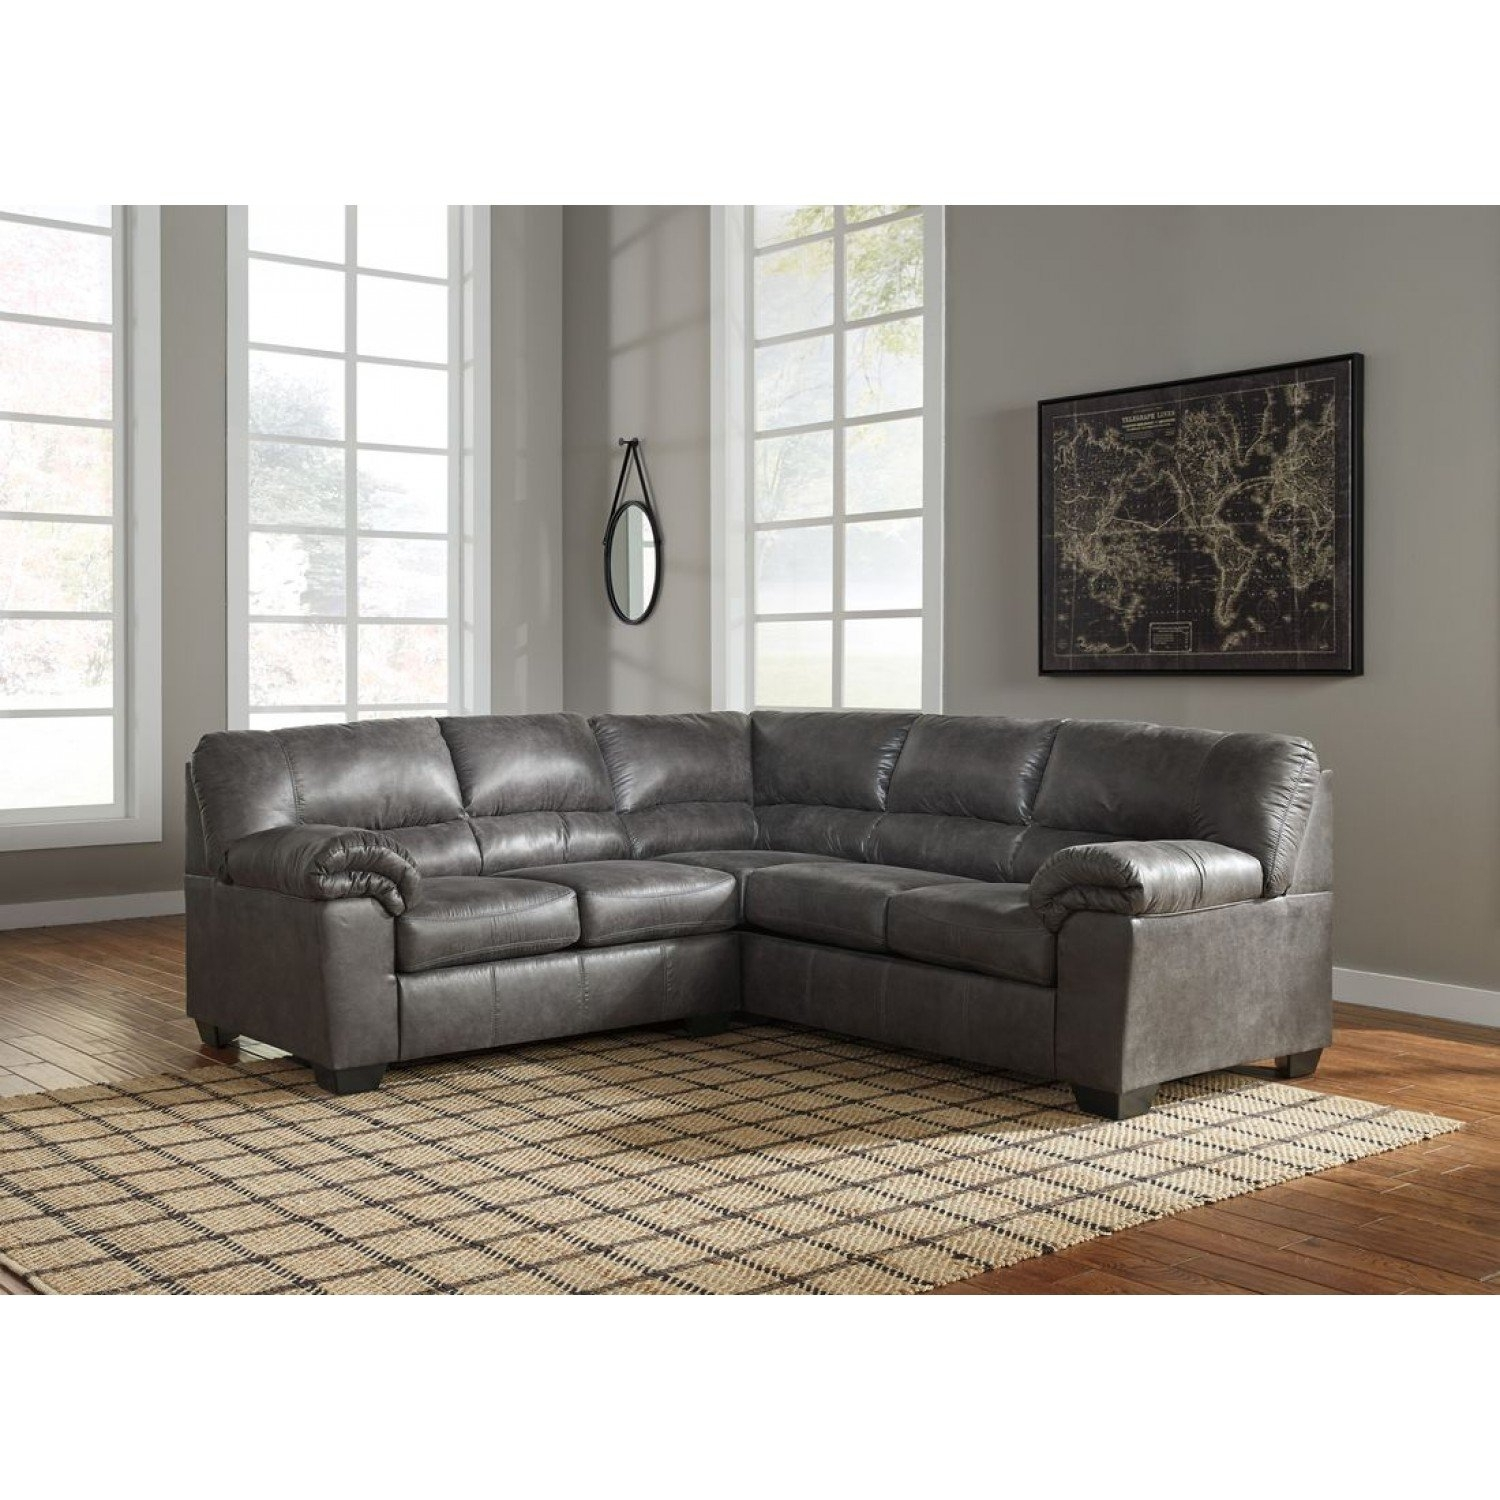 Glamor 25 Living Room With Leather Sectional Rustic Intended For Glamour Ii 3 Piece Sectionals (View 20 of 25)